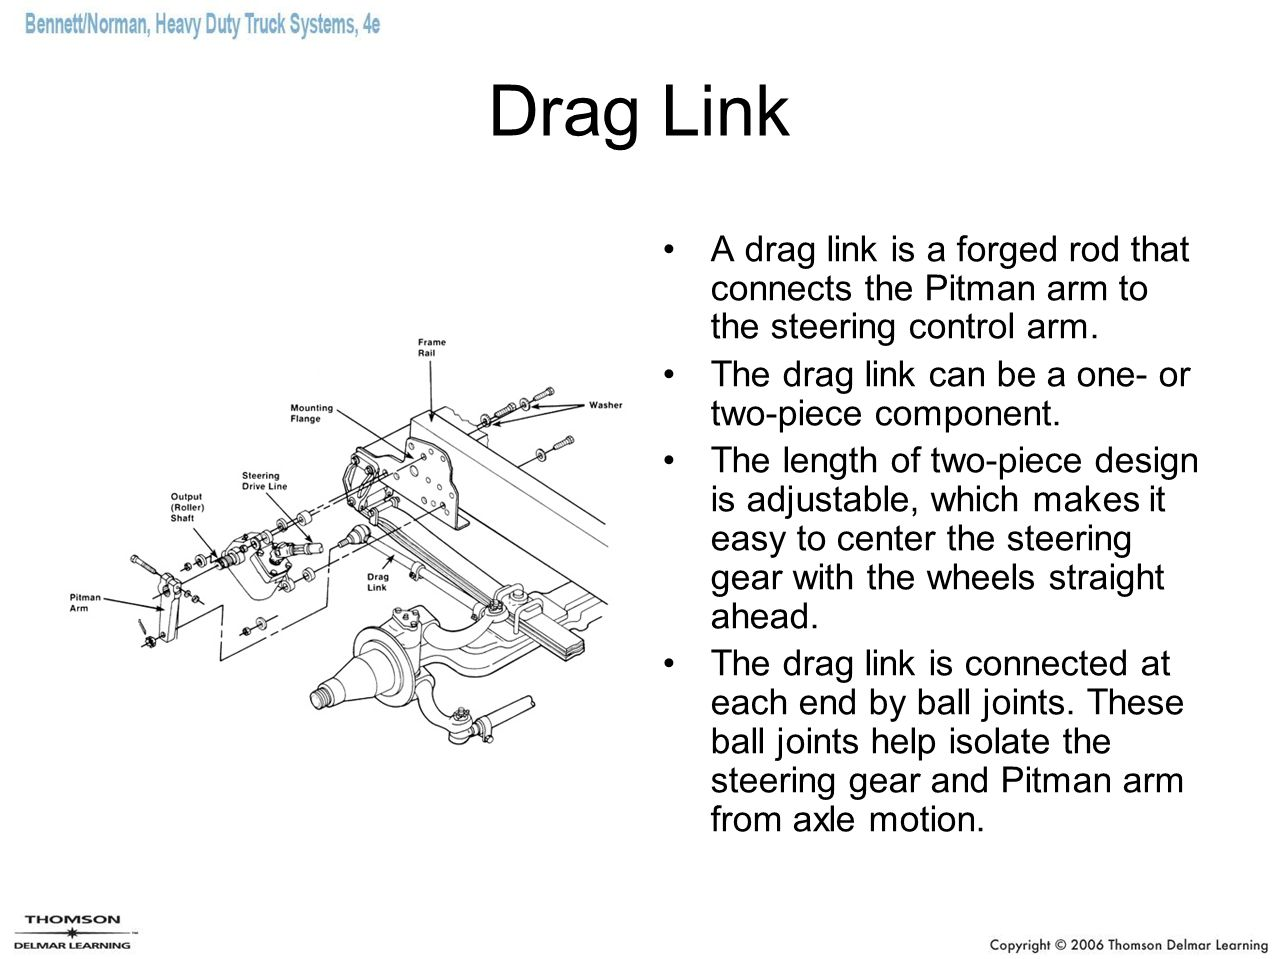 Drag Link A drag link is a forged rod that connects the Pitman arm to the steering control arm. The drag link can be a one- or two-piece component.